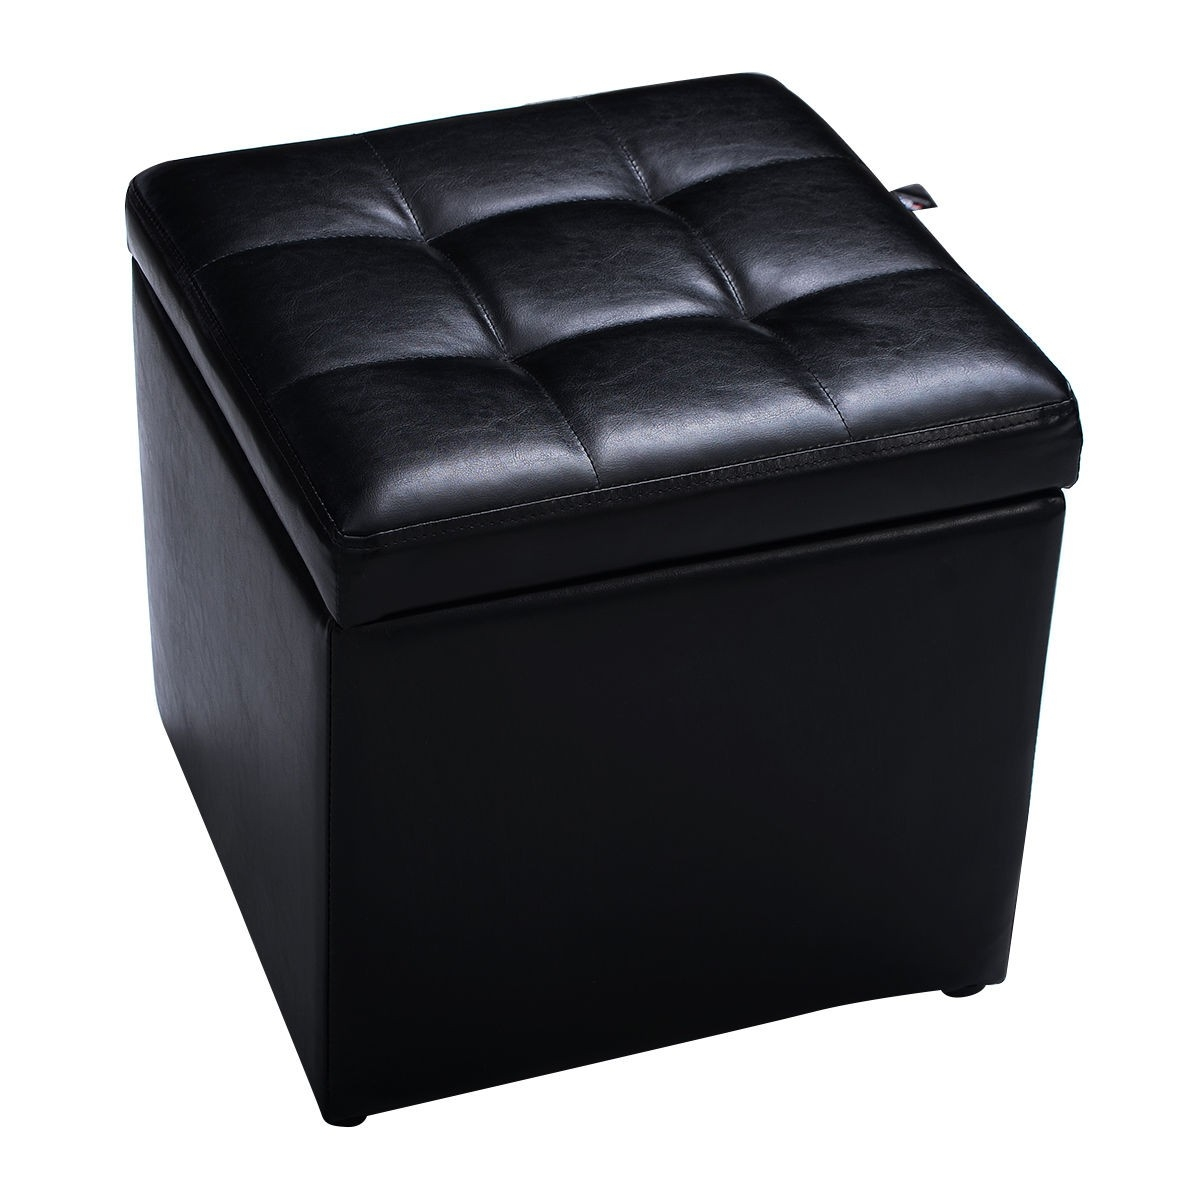 Black Foldable Cube Ottoman Pouffe Storage Seat Ottomans Furniture With Footstools And Pouffes With Storage (Image 1 of 15)